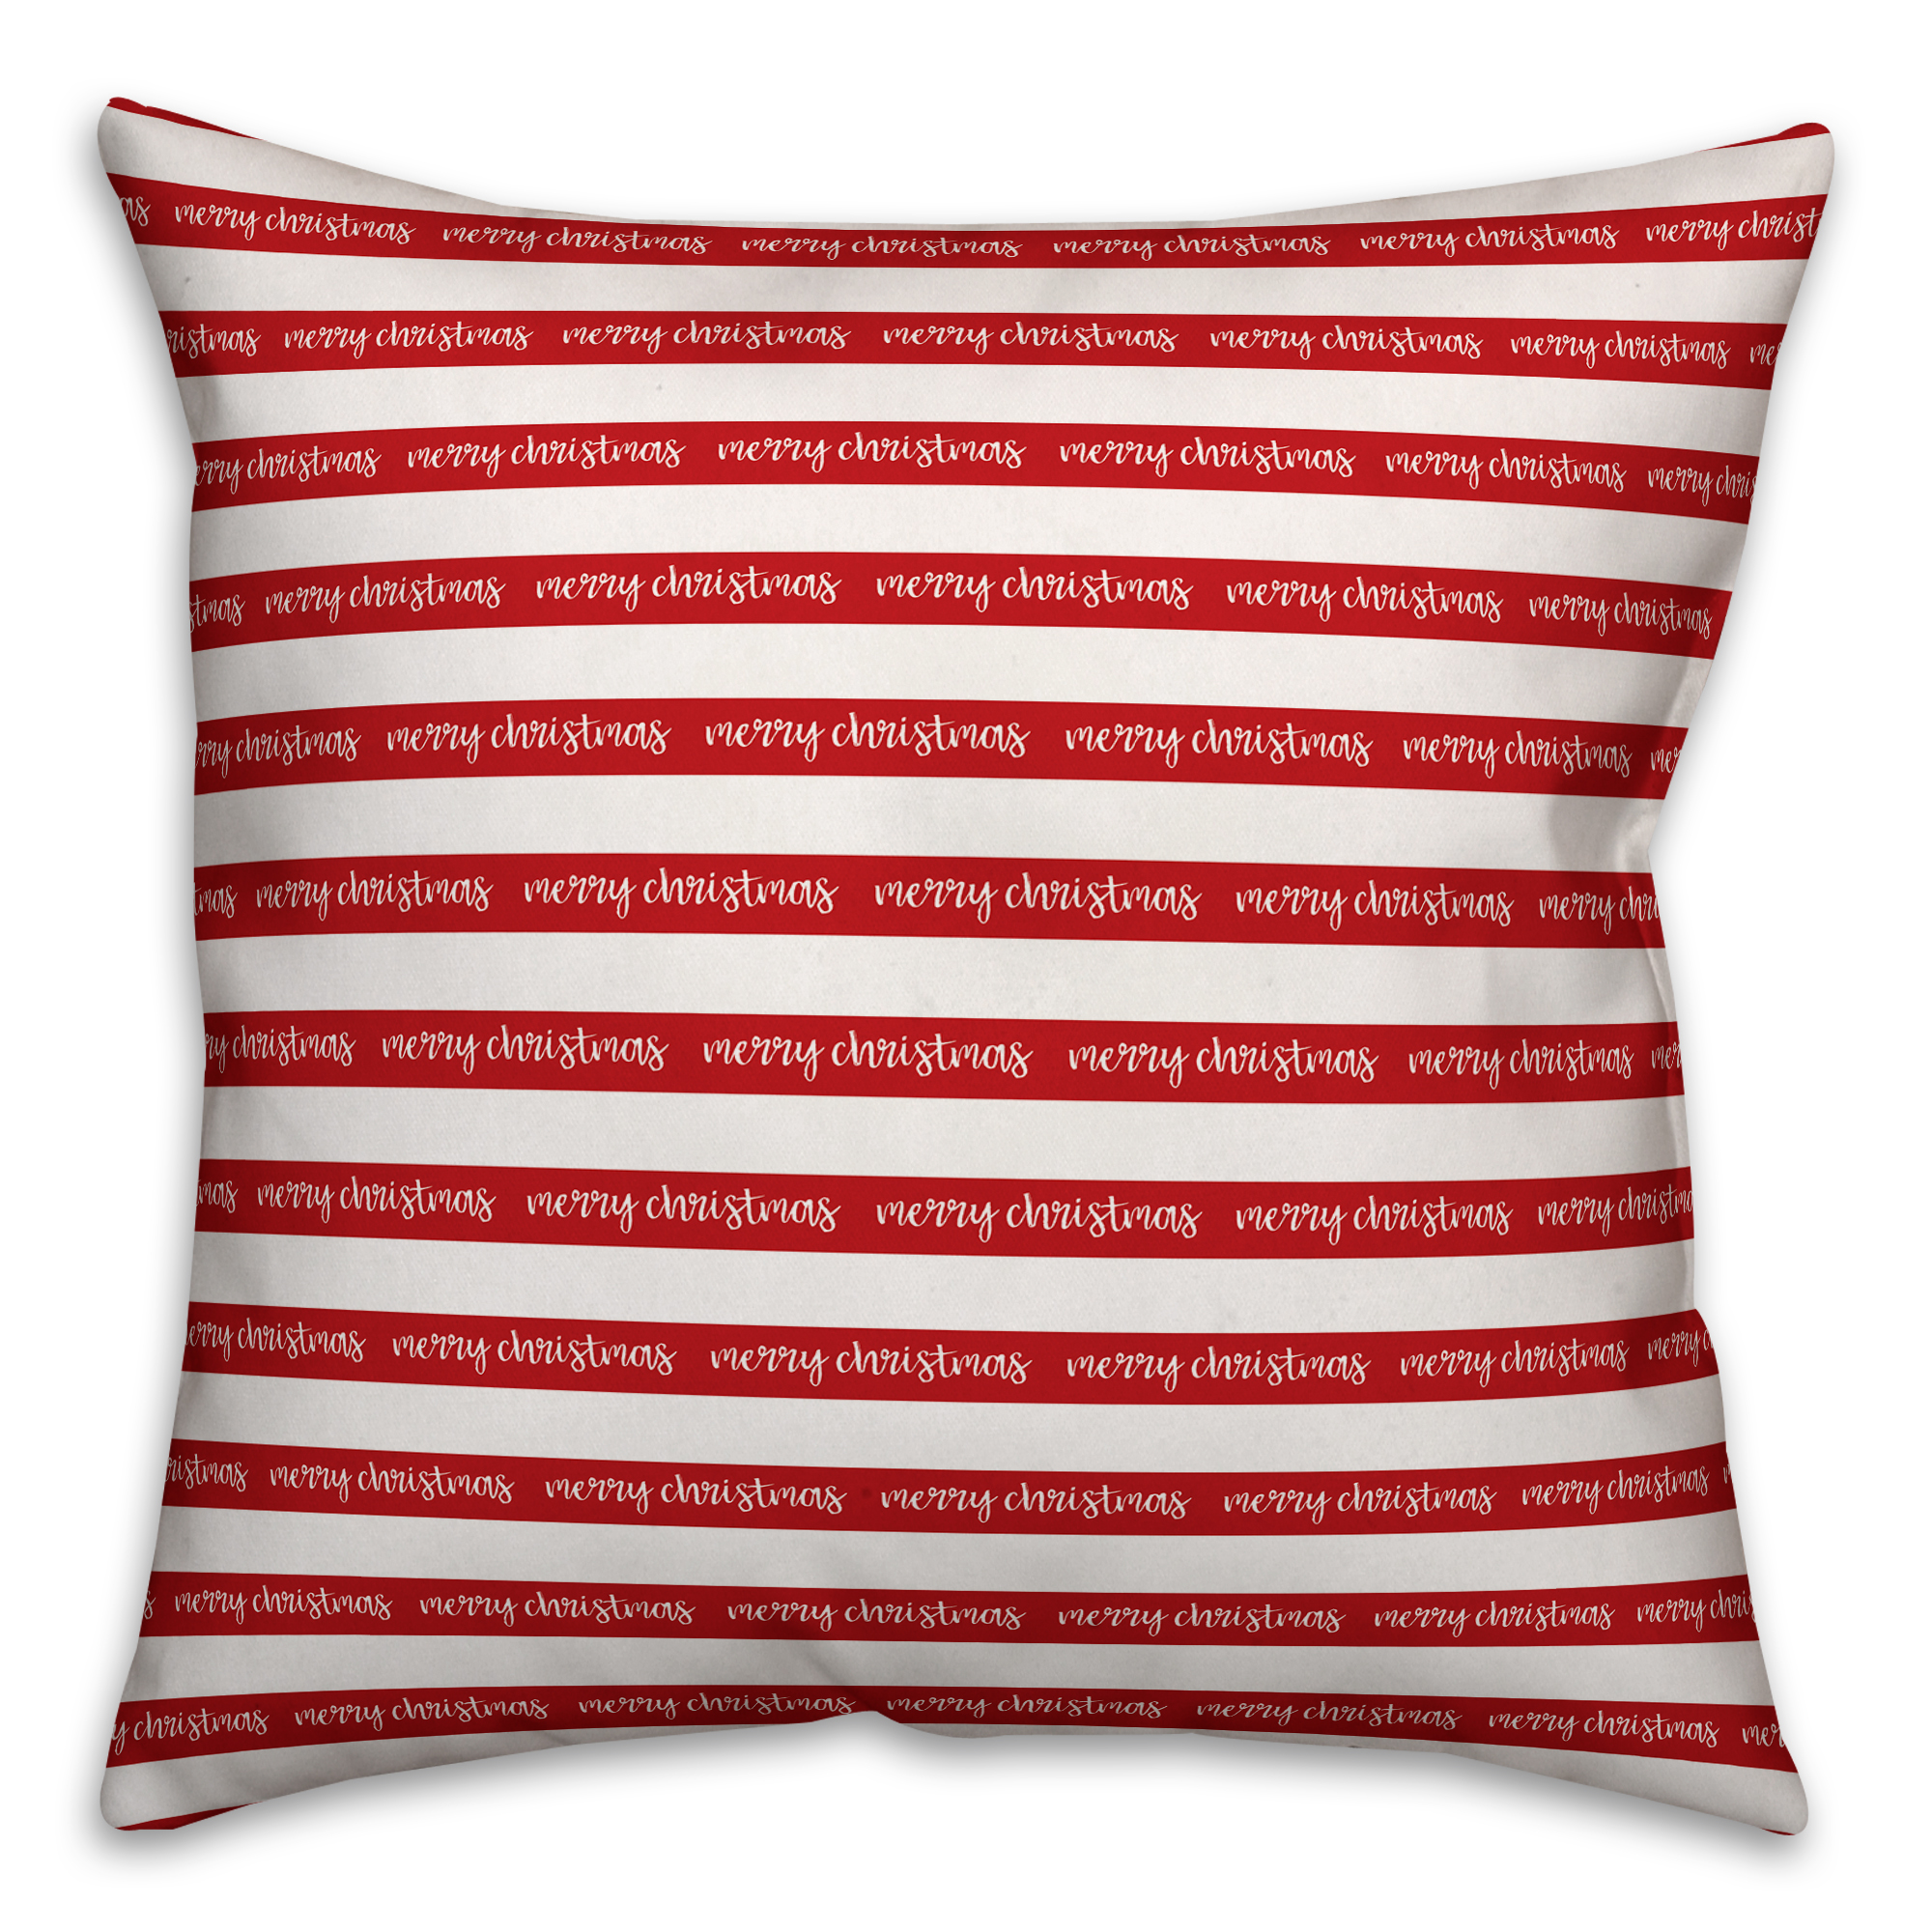 Merry Christmas Stripes 16x16 Spun Poly Pillow